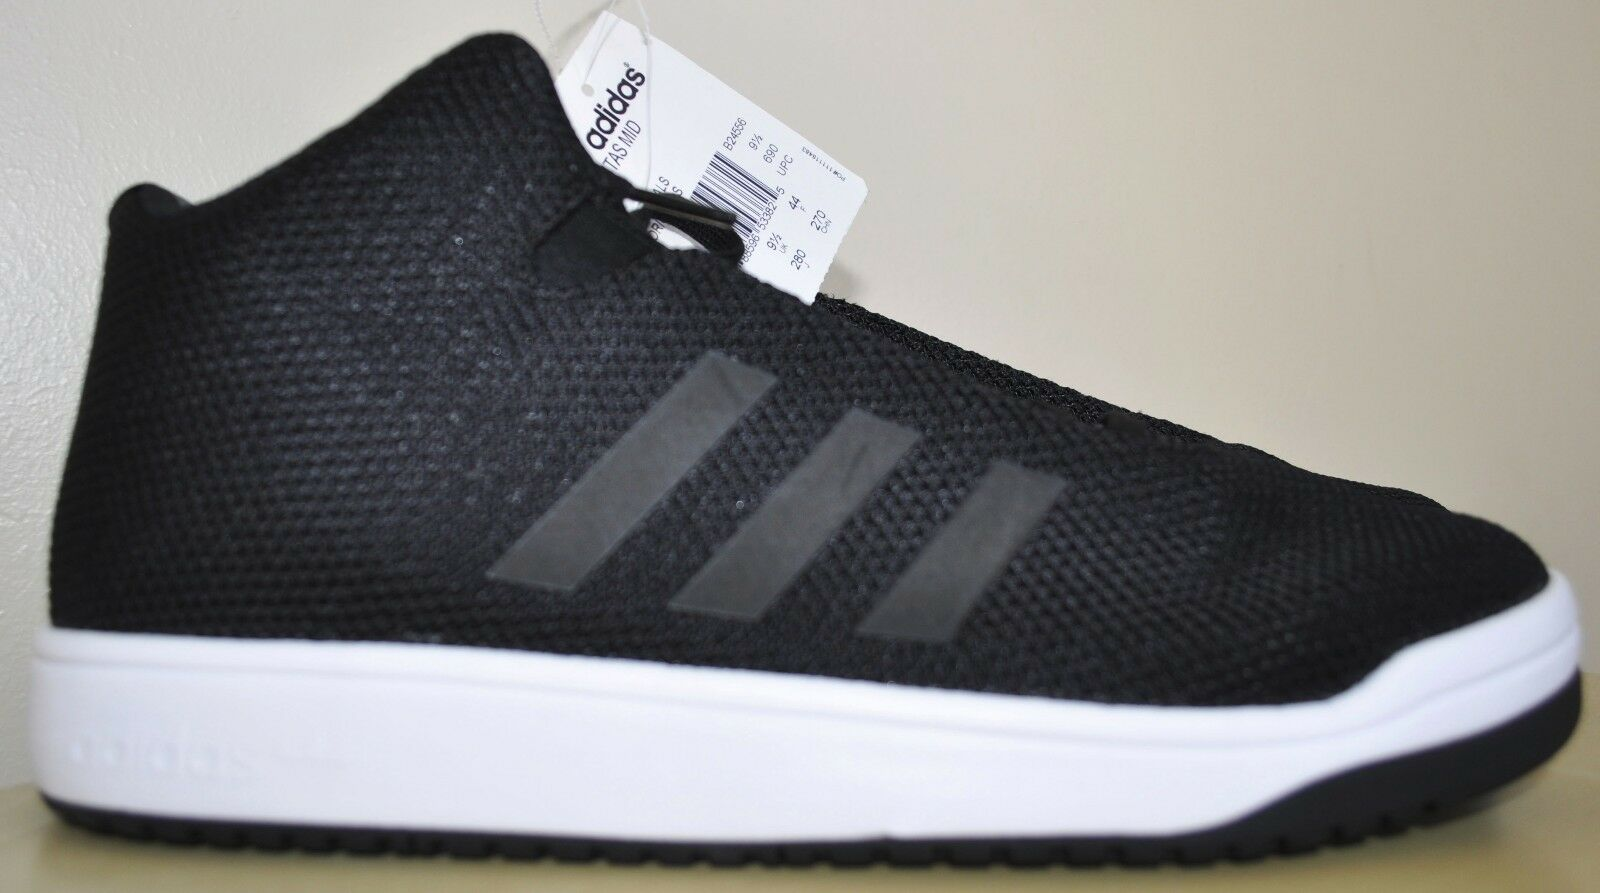 new style ca270 b2c41 cheap Adidas Originals Veritas Mid Top Black with White Woven Mesh Mens  Size 9 US